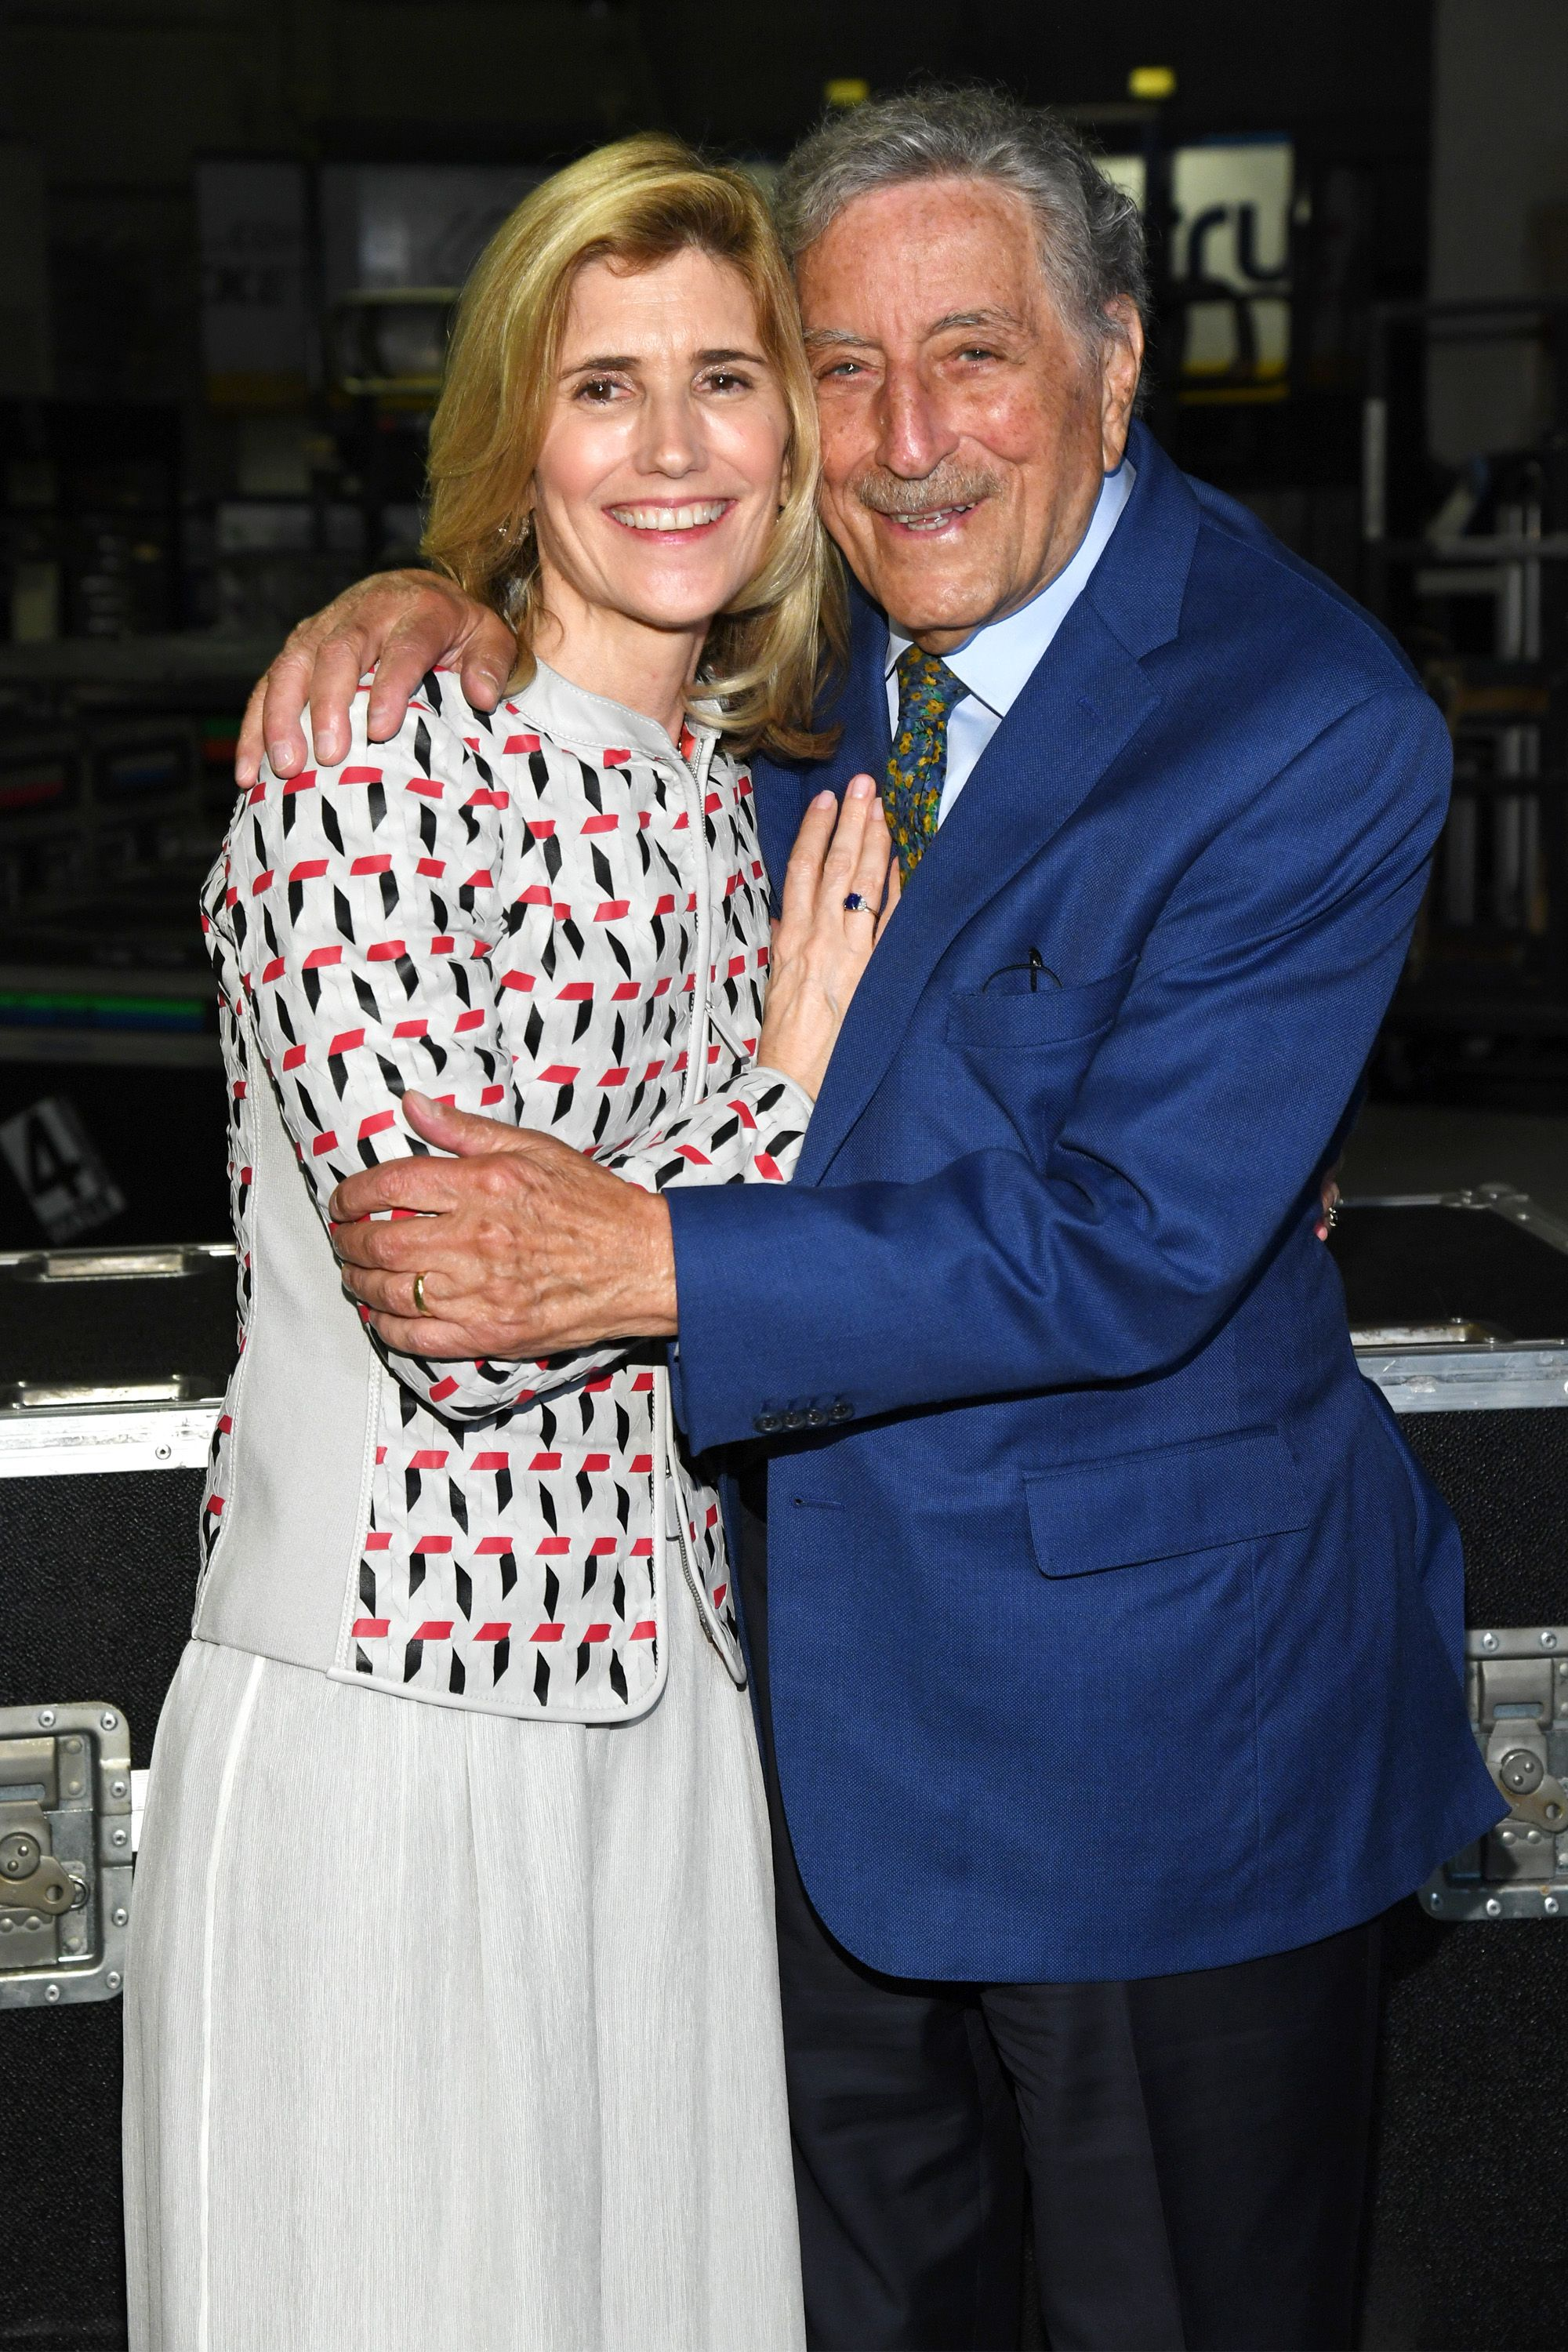 Tony Bennett and Susan Benedetto Celebrate 20th Anniversary of Exploring the Arts at Billy Joel at Madison Square Garden on April 12, 2019 in New York City. | Photo: Getty Images